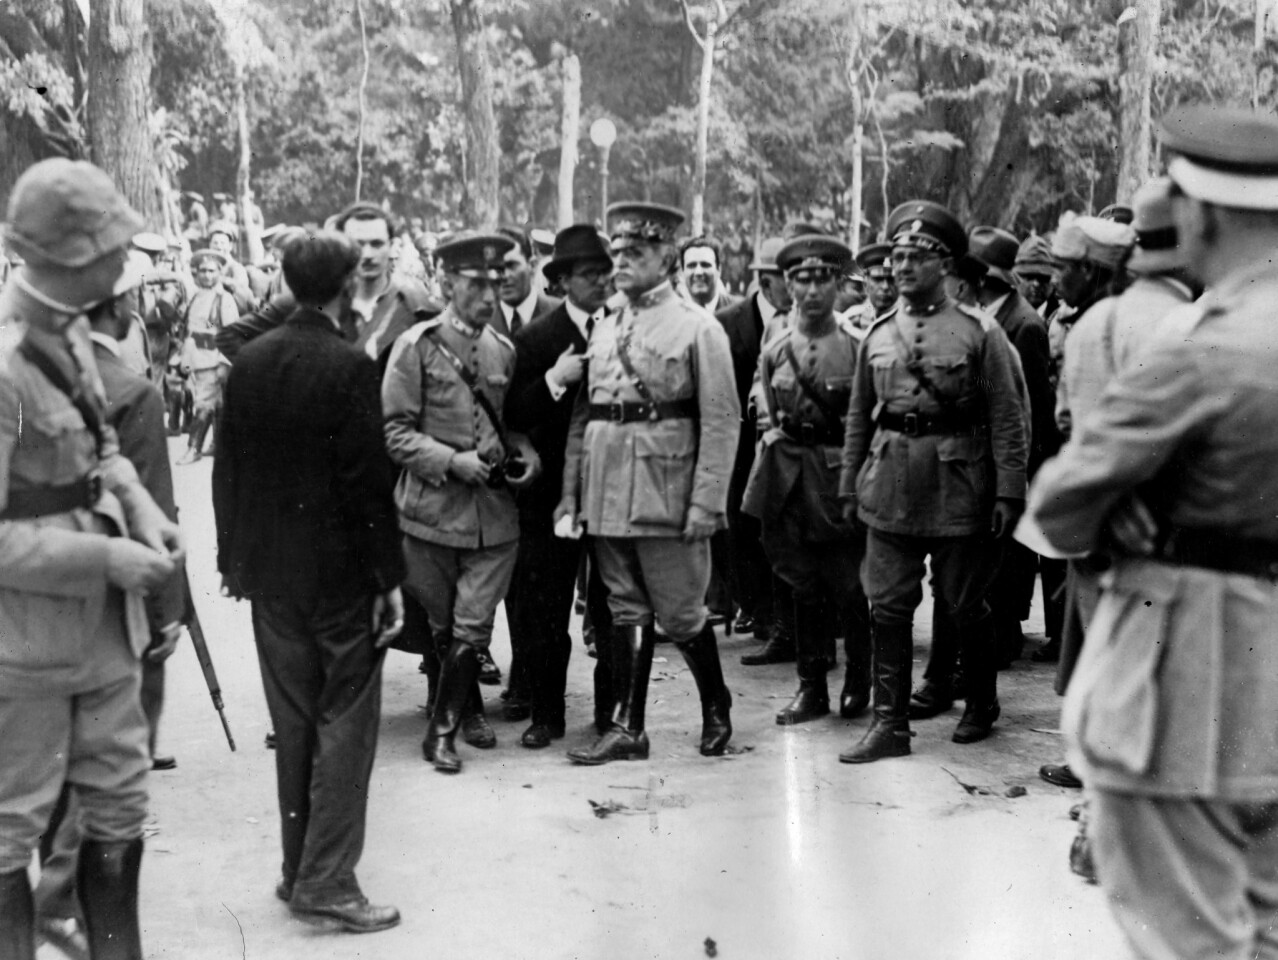 In this image from 1930, Gen. Tasso Fragoso, president of Brazil's provisional junta, reviews troops in front of the palace of the deposed president.